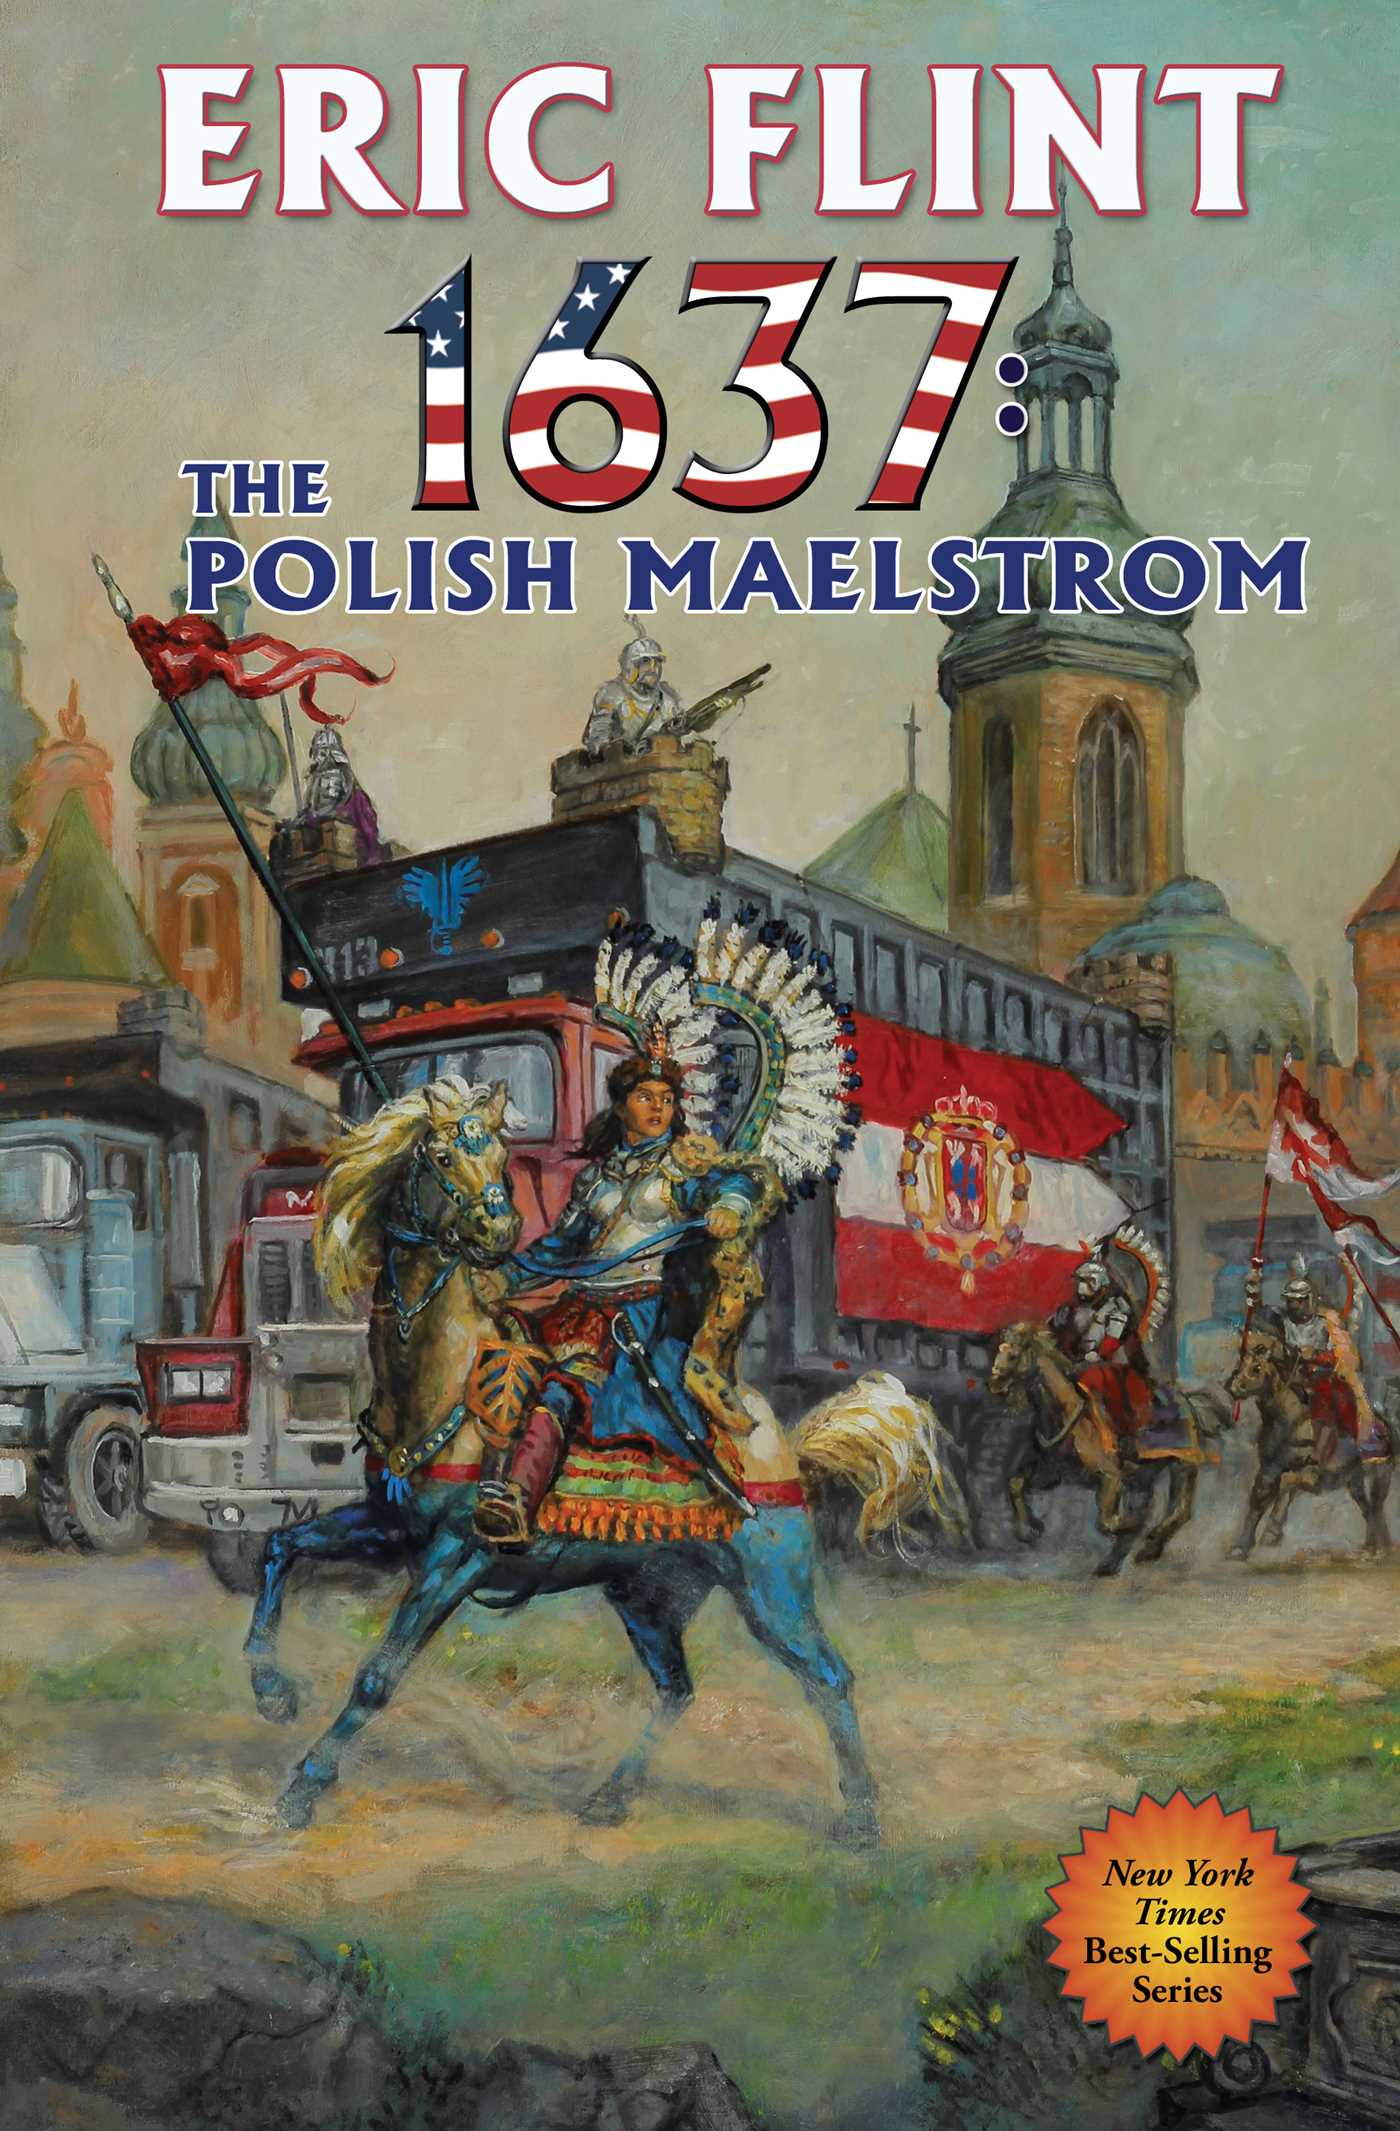 Book Cover Image (jpg): 1637: The Polish Maelstrom